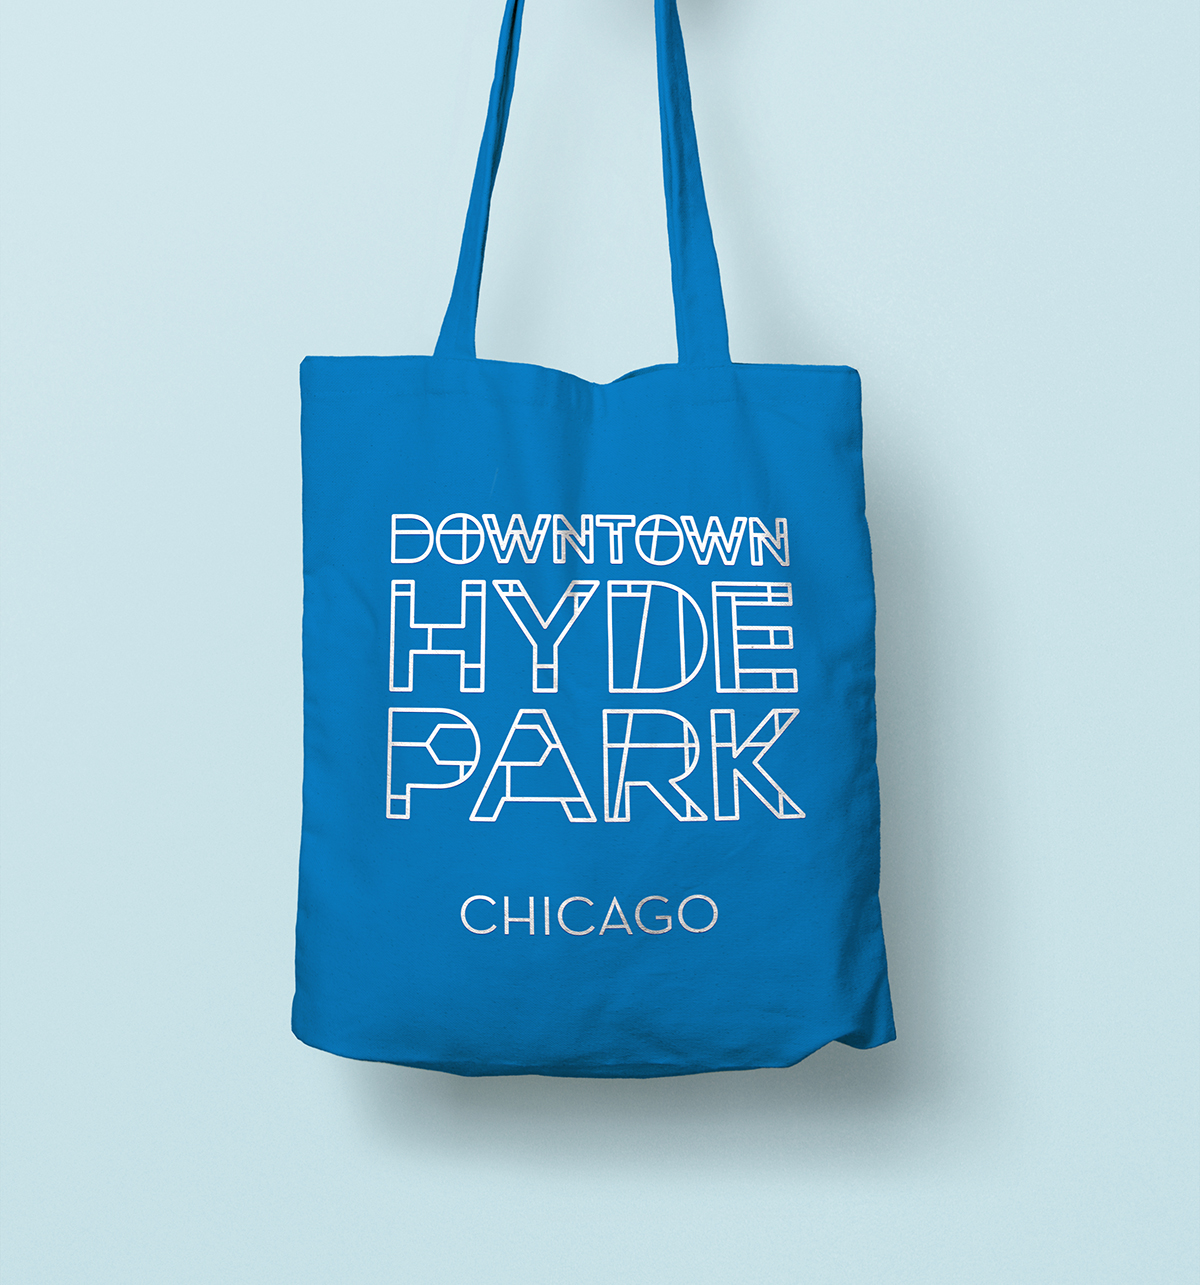 Downtown Hyde Park logo on a tote bag